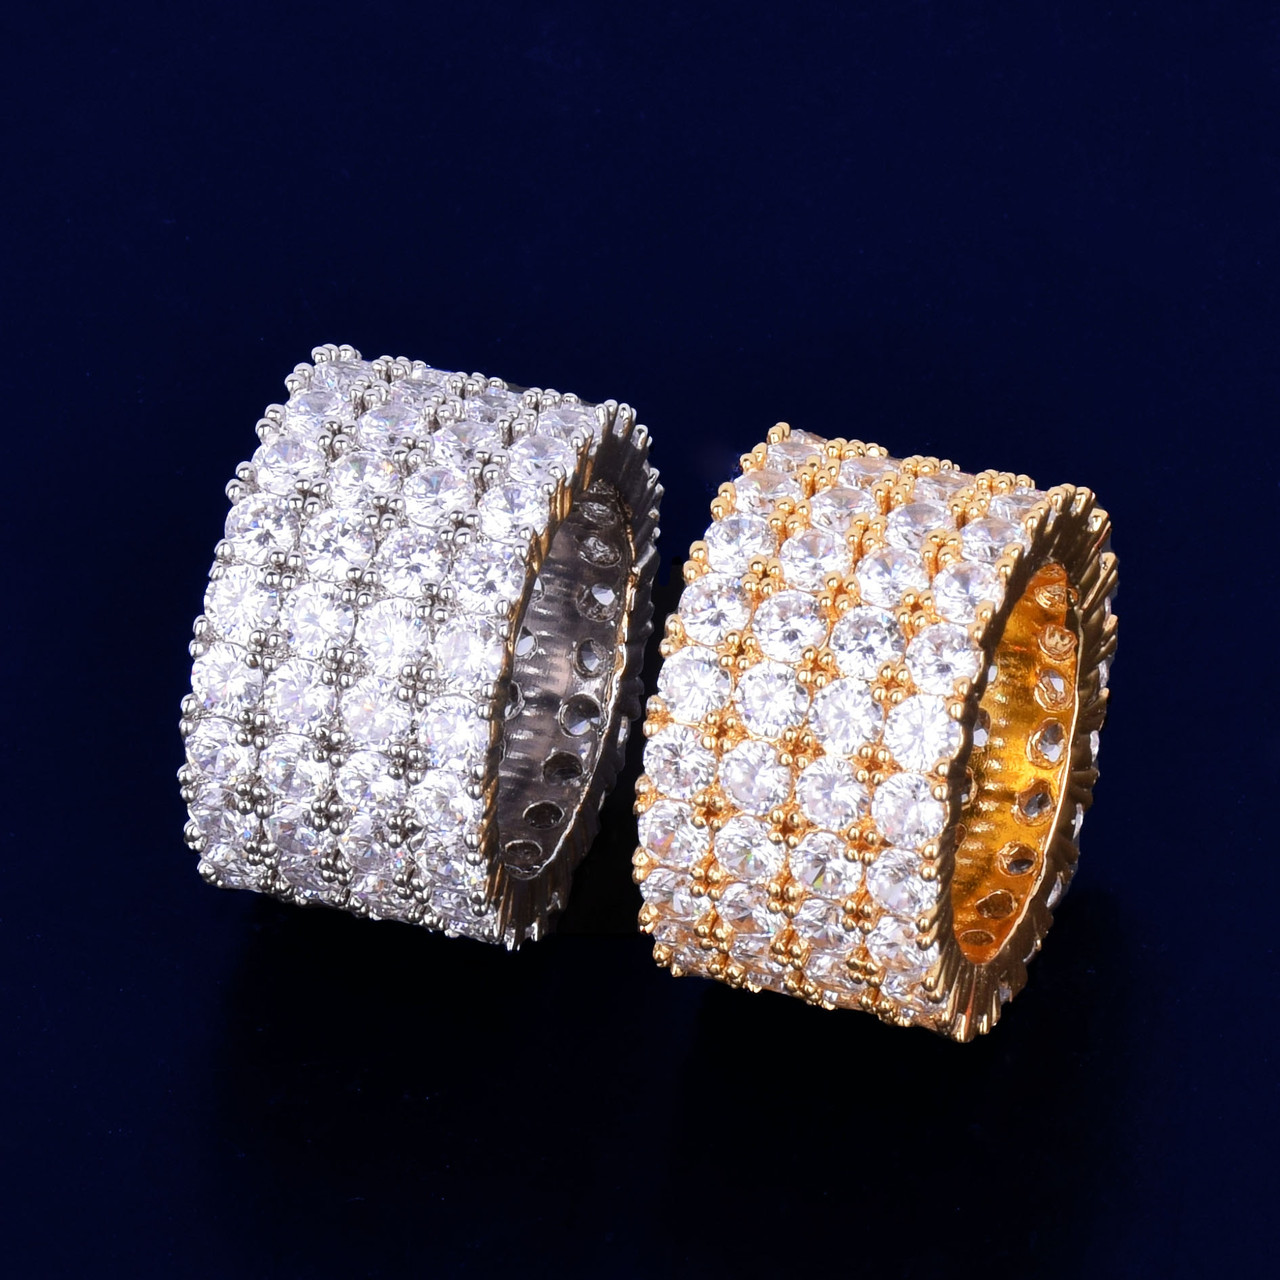 GOLD 18K MEN WOMEN FULL LAB DIAMOND MICROPAVE ICED OUT HIP HOP BLING ROUND RING